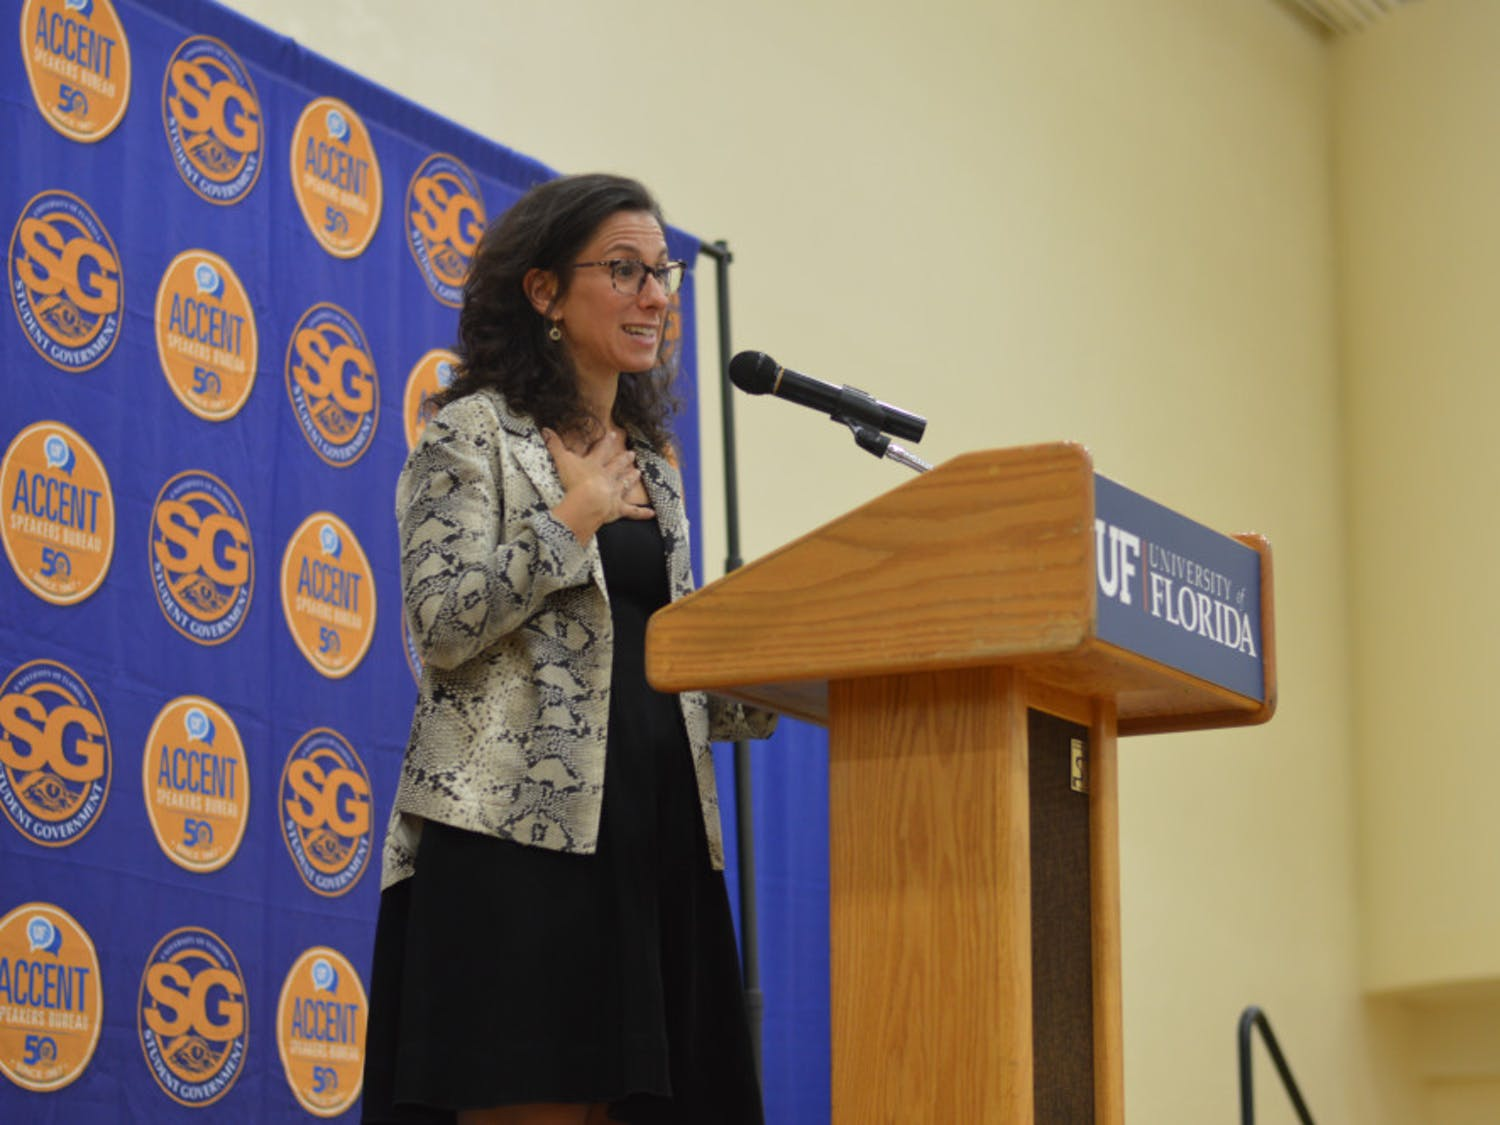 Award-winning journalist and author Jodi Kantor spoke to students Wednesday night in the Florida Gym as part of Accent Speaker Bureau's final event of the semester. The New York Times investigative reporter was recently awarded the Pulitzer Prize for her story uncovering Harvey Weinstein's sexual abuse in the entertainment industry as well as being named one of TIME Magazine's 100 most influential people of 2018.